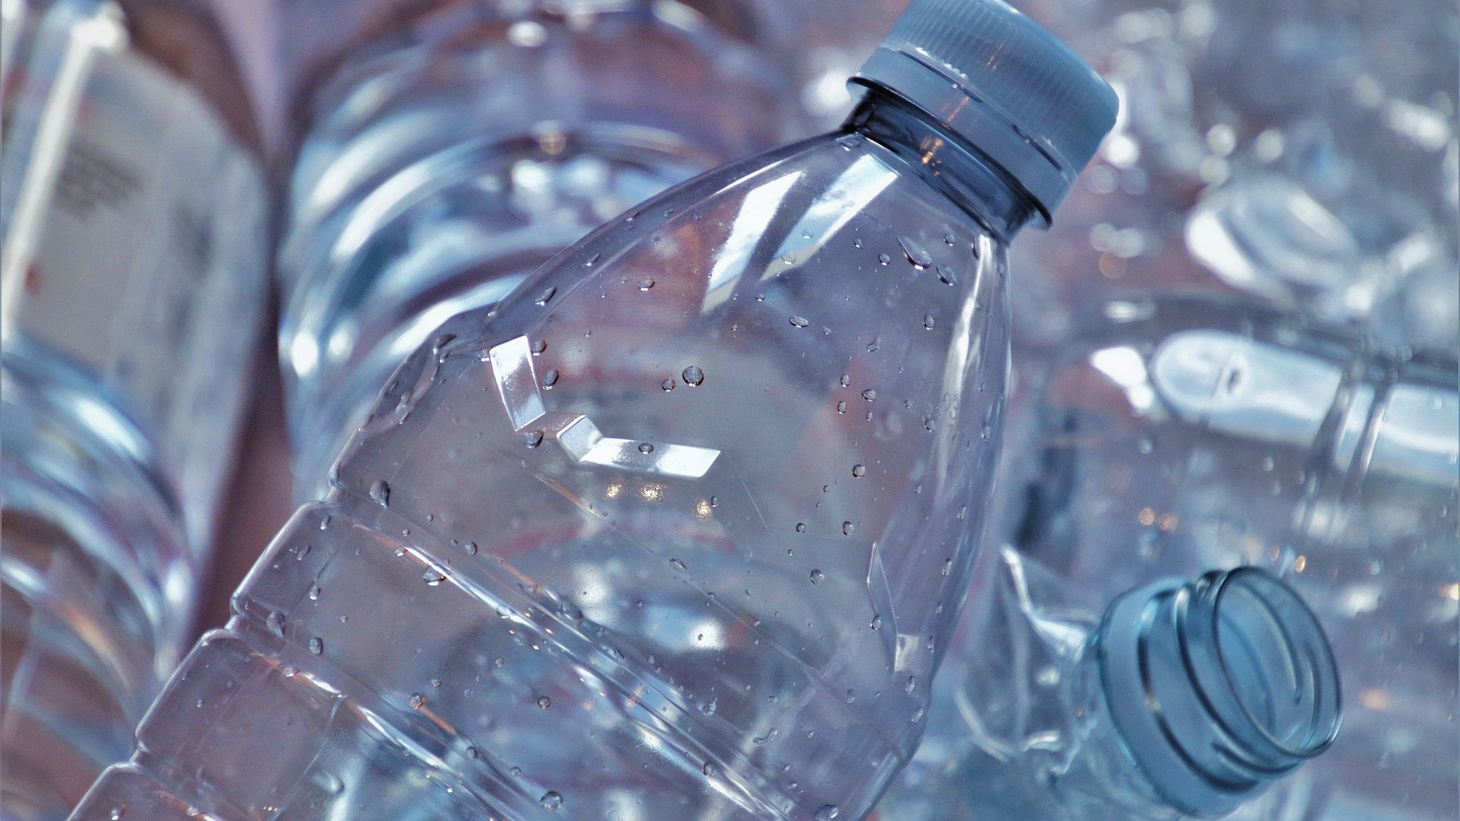 In 1960, the U.S. generated 390 million tons of plastic, according to the EPA. Today it's nearly 10 times that much.